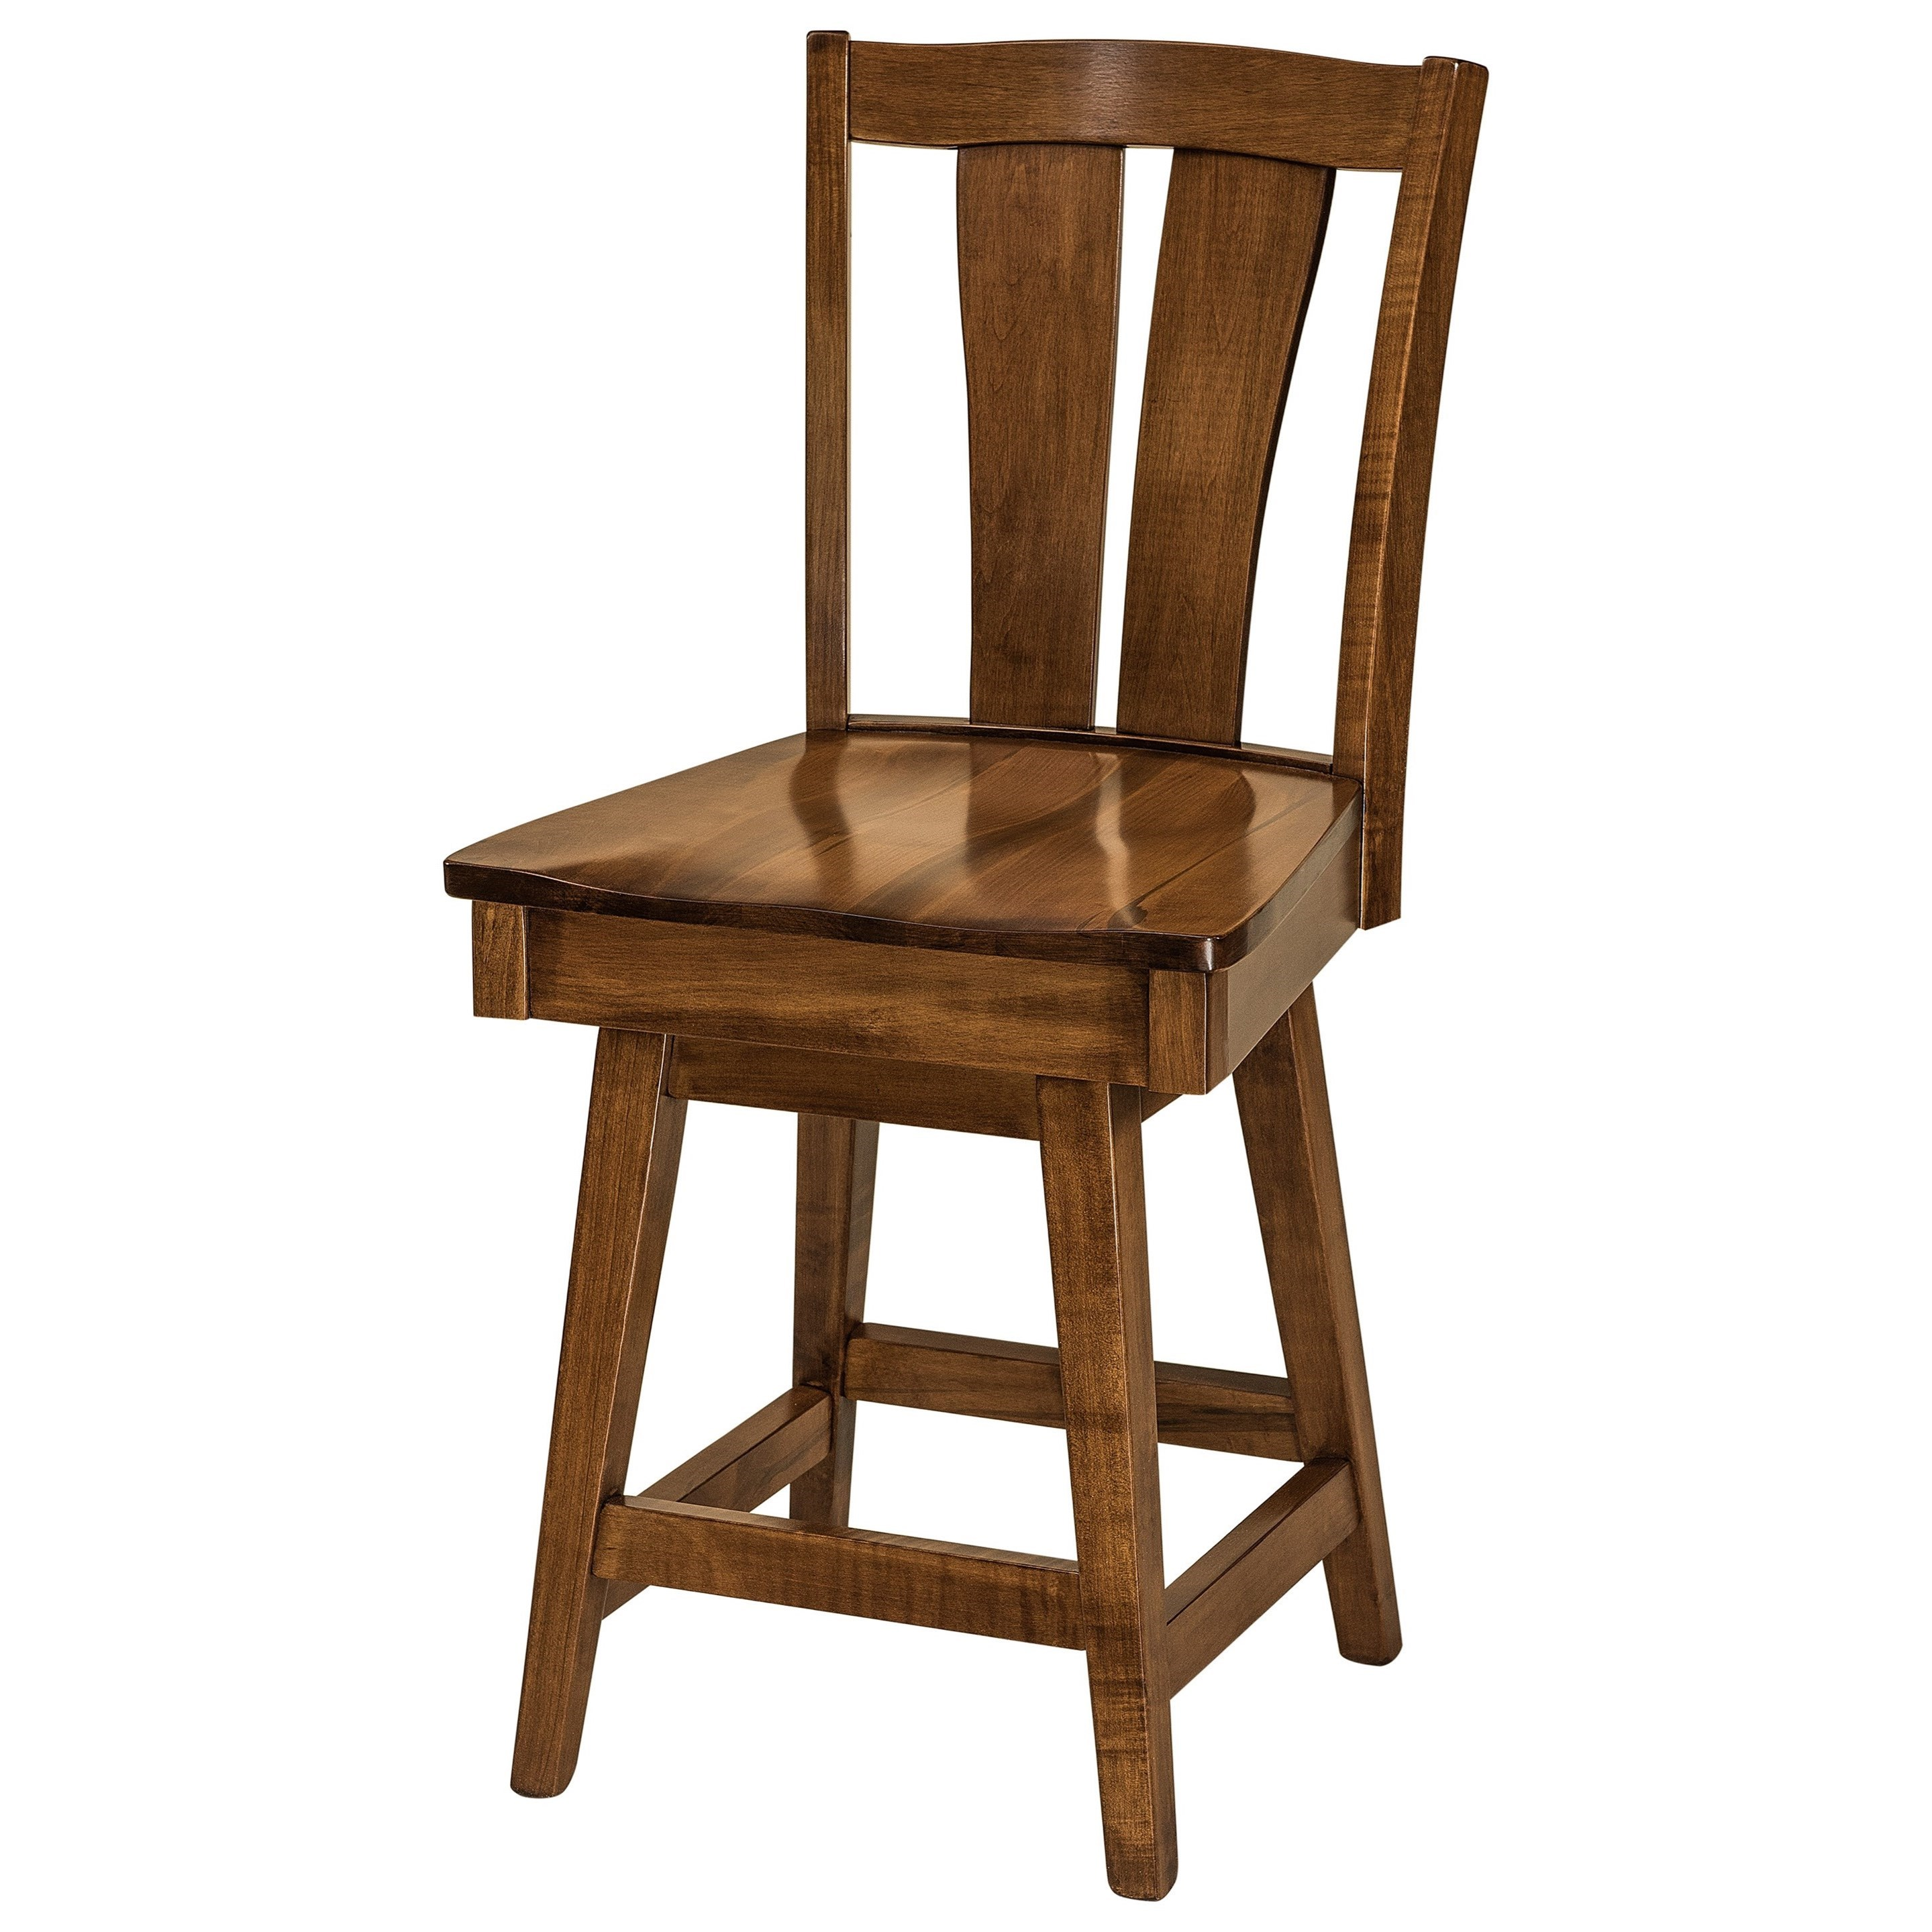 Brawley Swivel Counter Height Stool - Fabric Seat by F&N Woodworking at Mueller Furniture